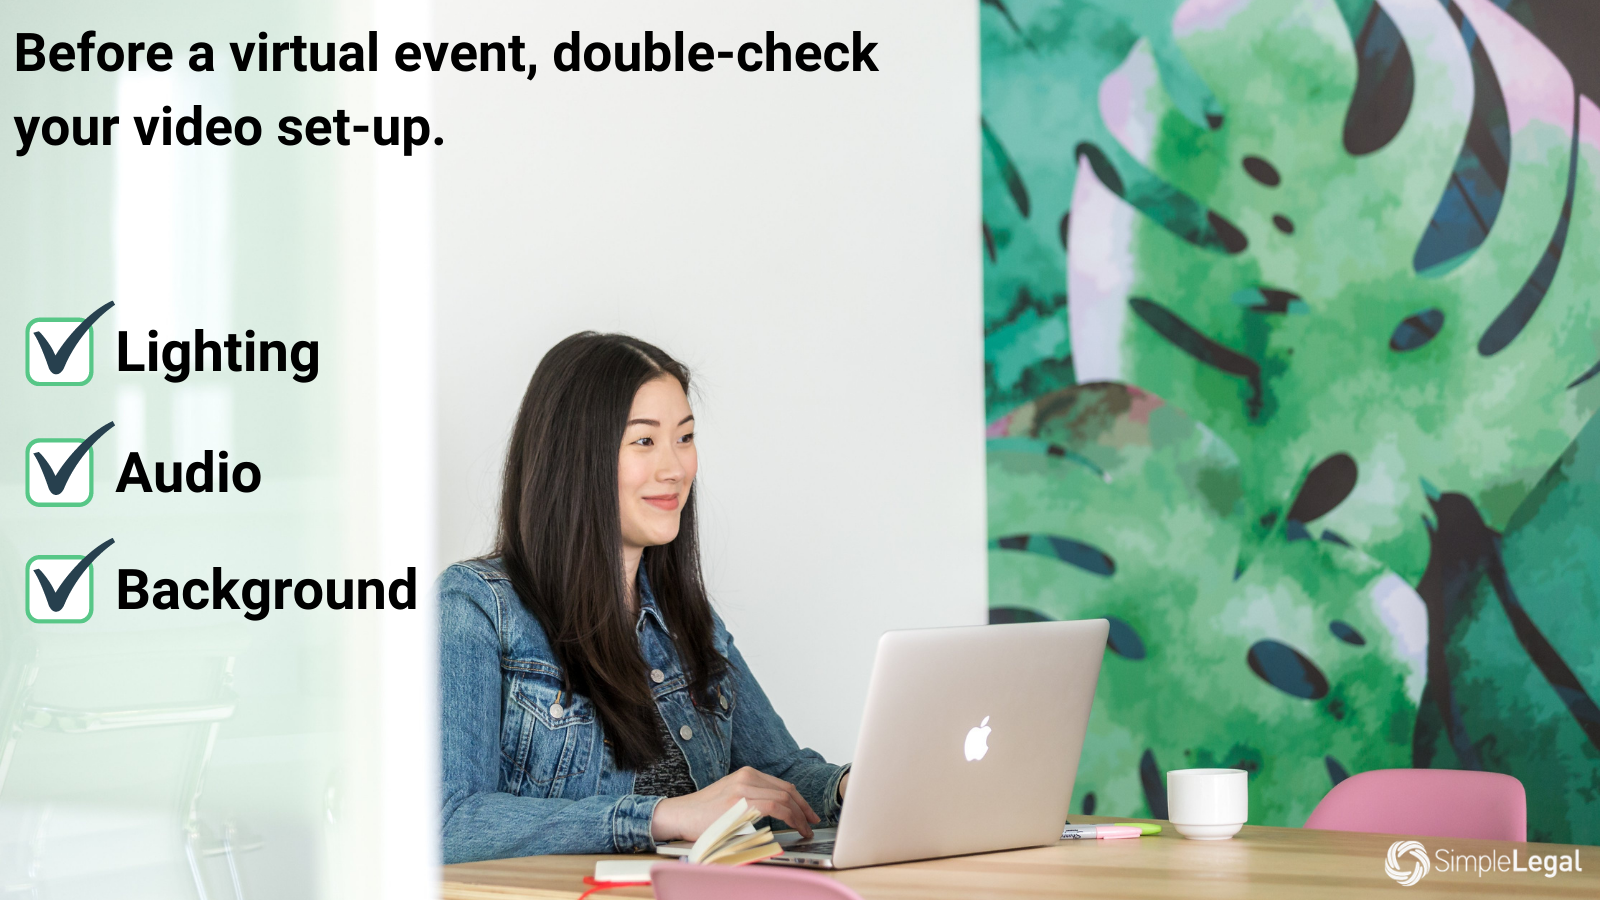 Test Your Video And Audio Setup Before The Virtual Event. Make Sure You're Happy With The Lighting, Sound Quality, And Everything That Appears In The Background.